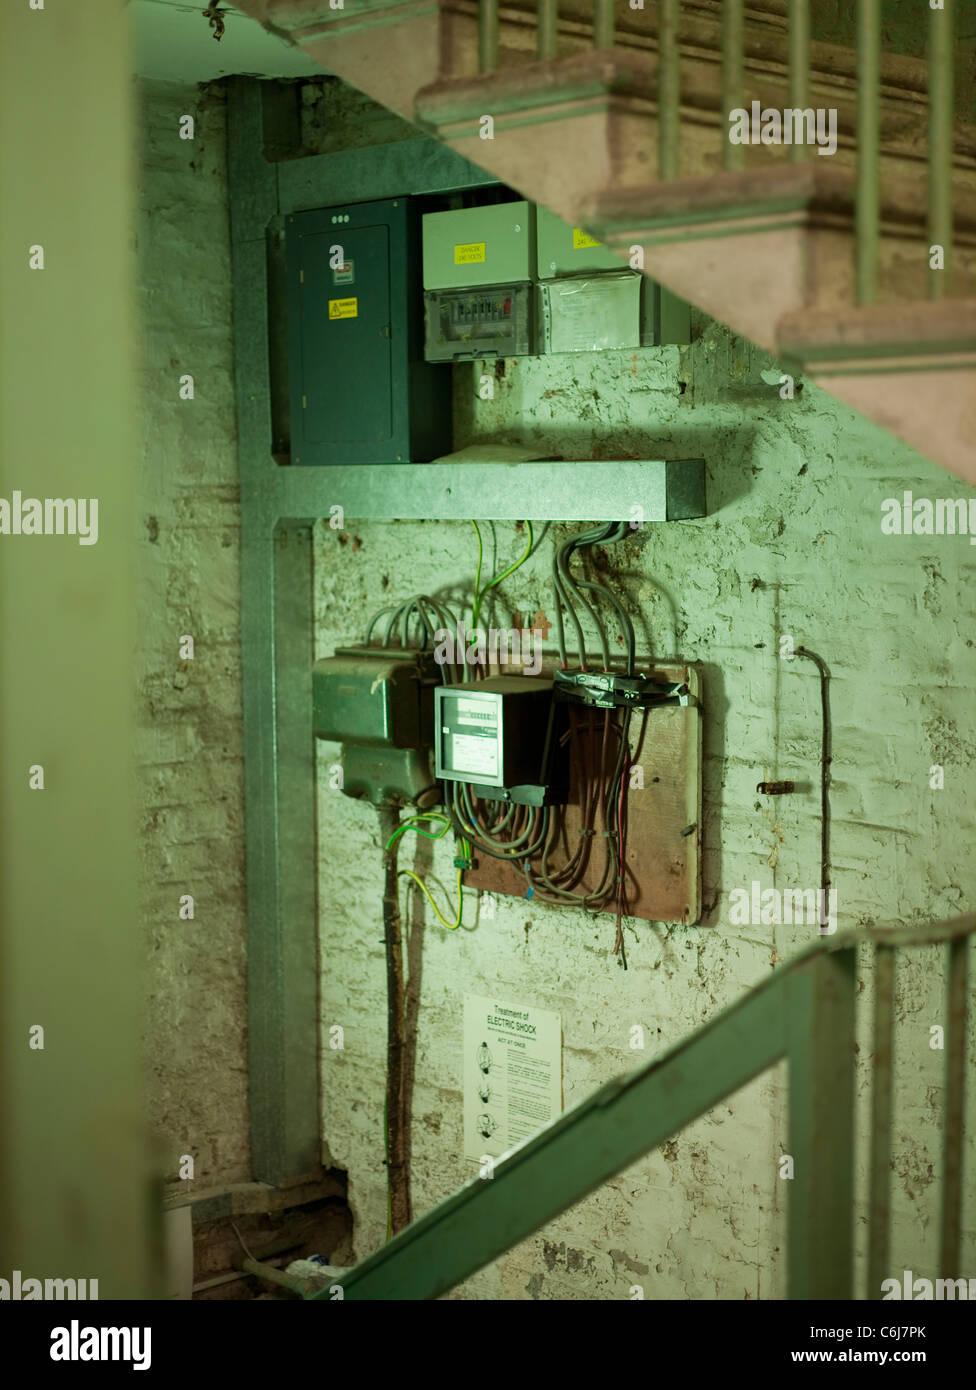 medium resolution of collection of fuse box and electricity meters in an old building stock image